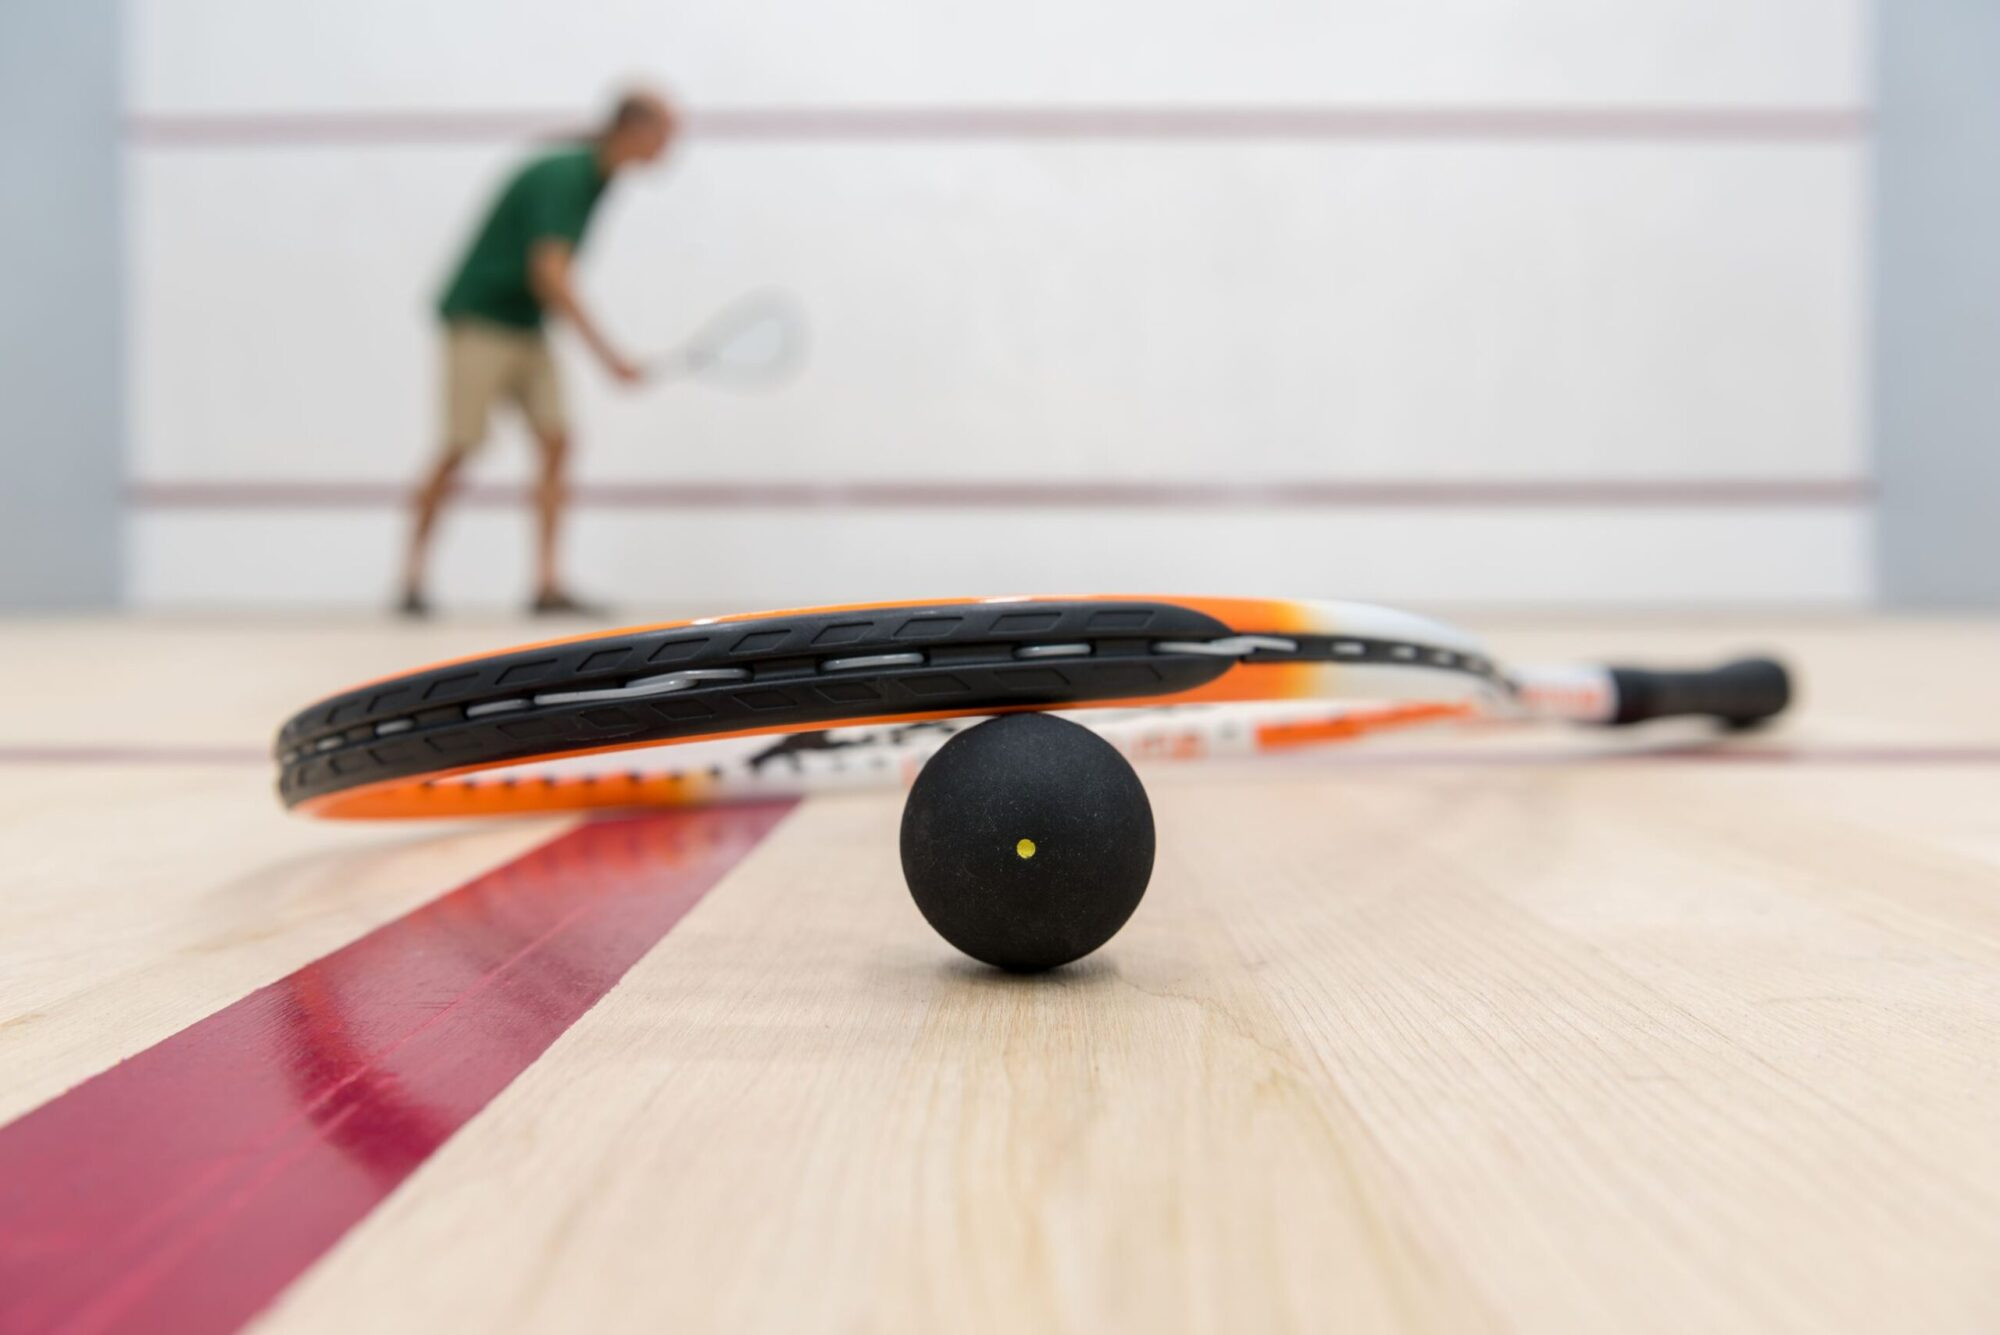 March Squash & Racketball Club